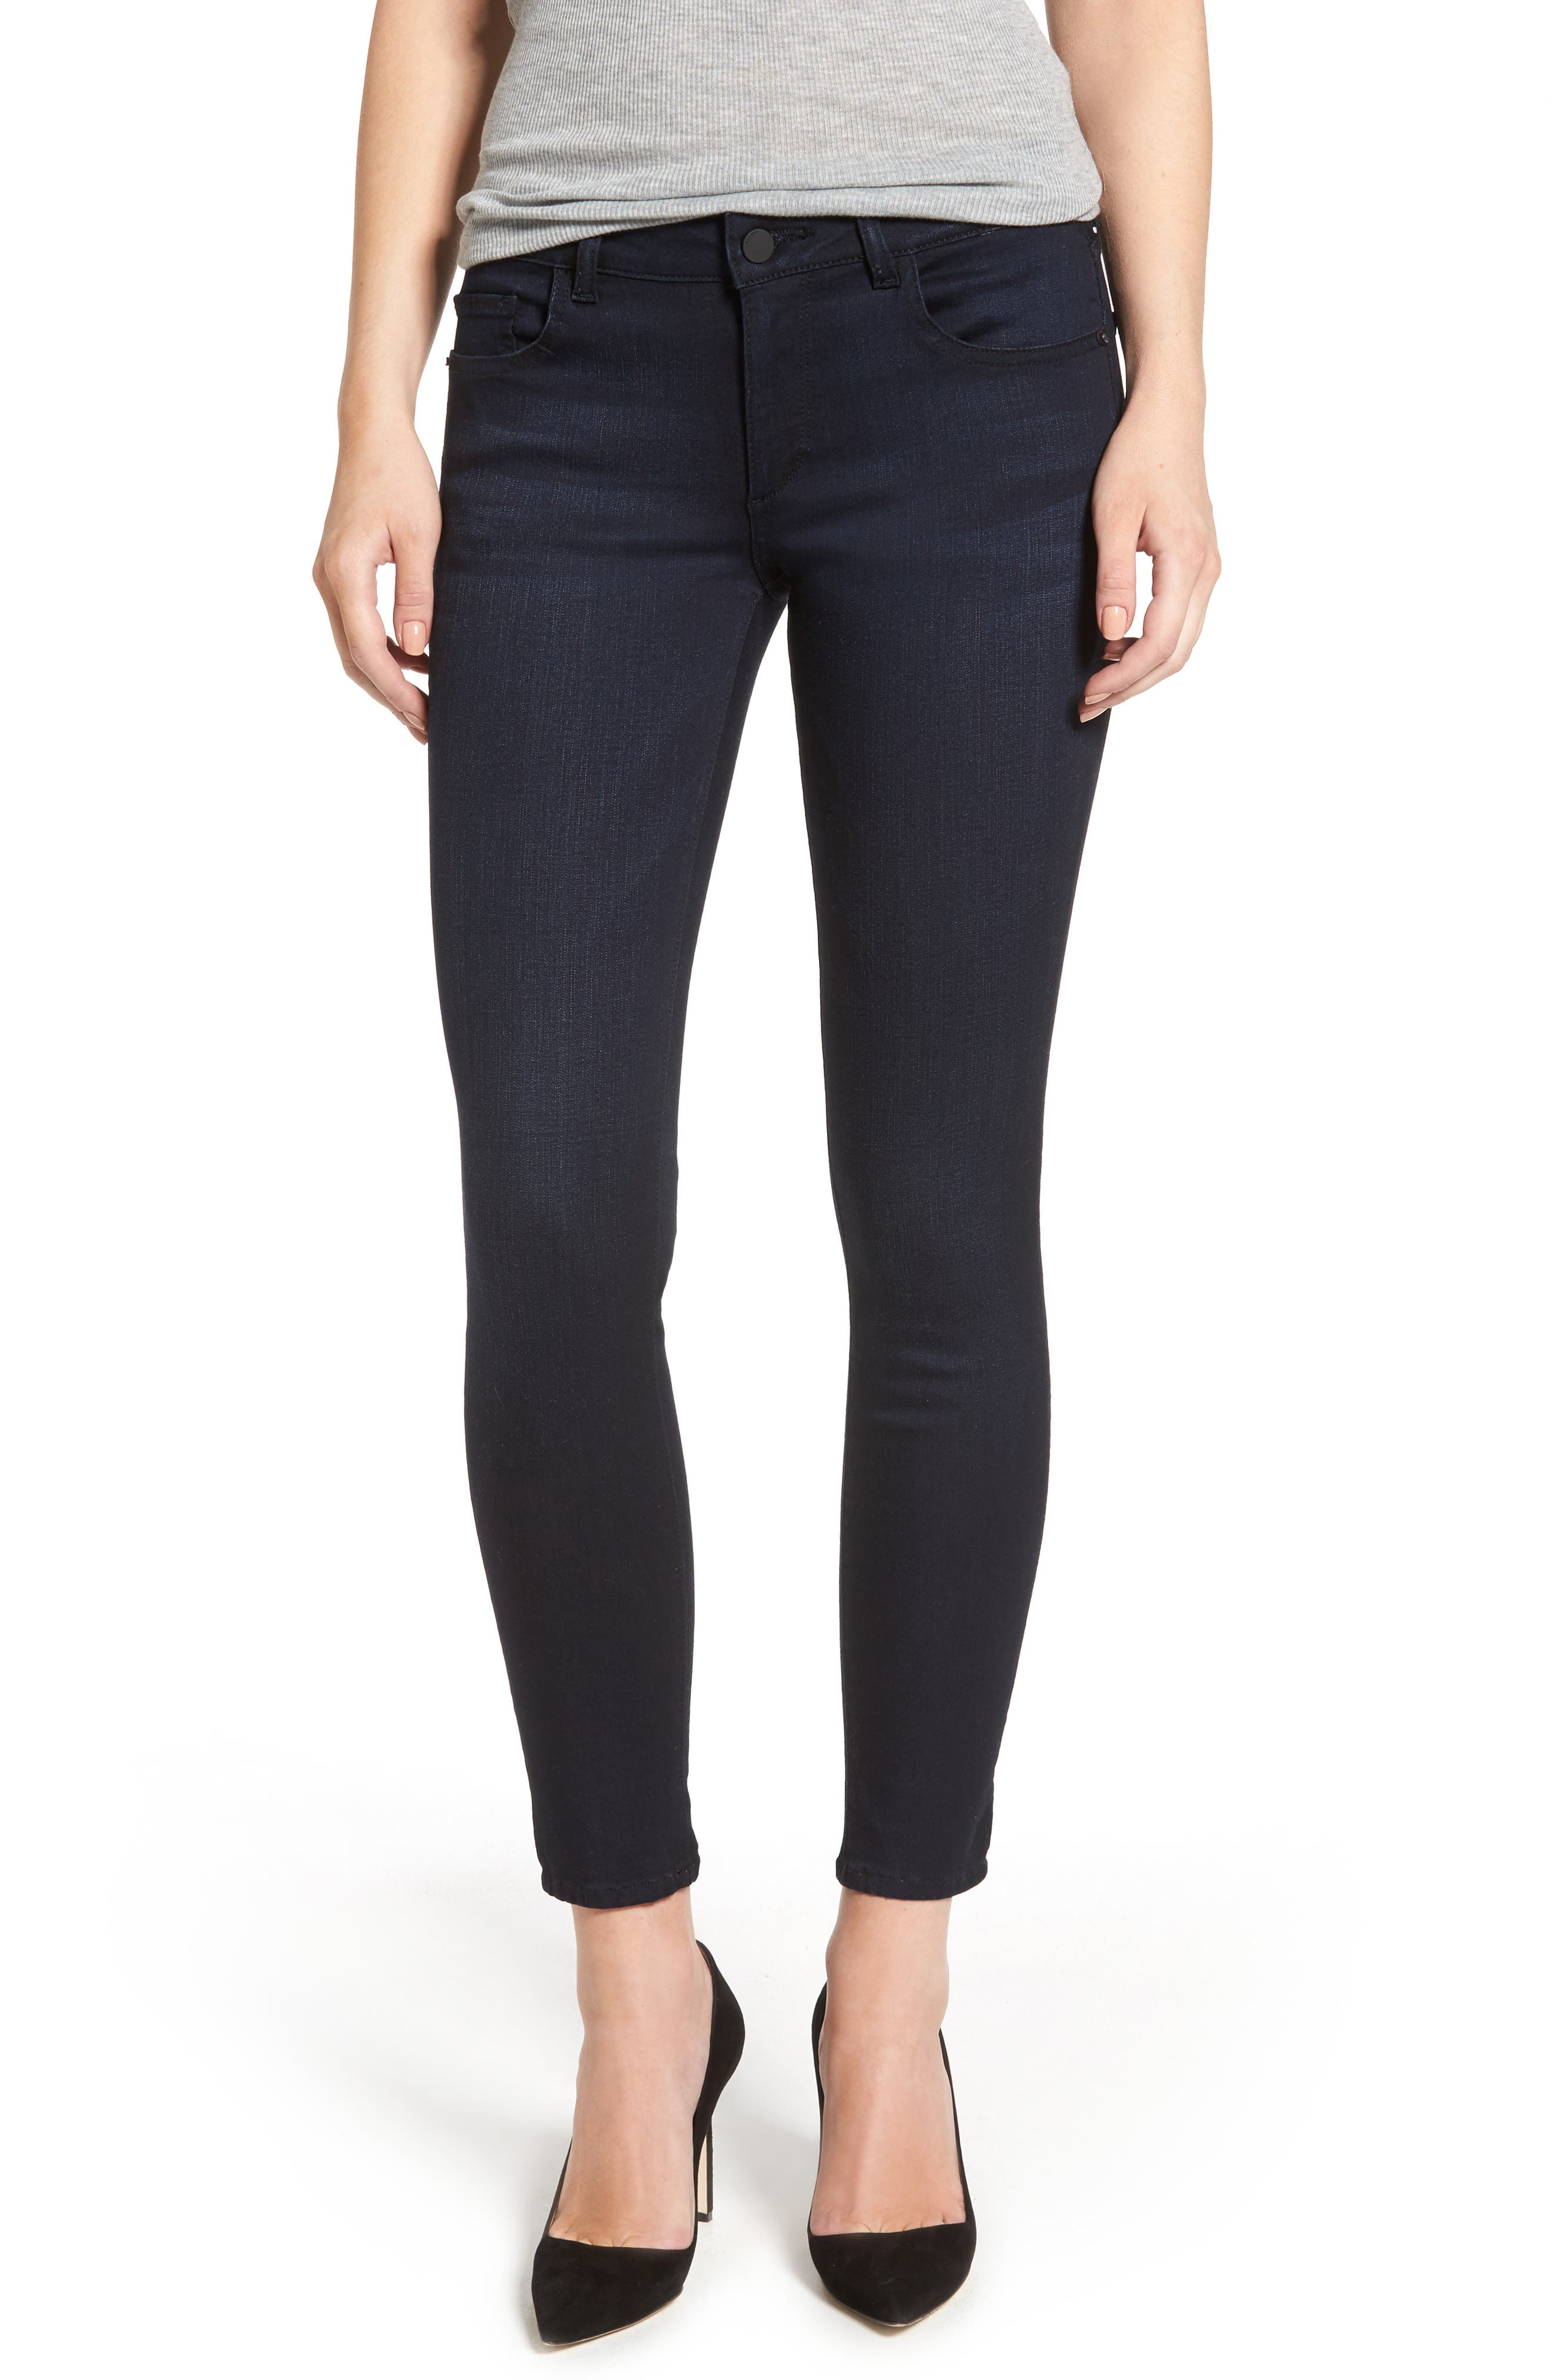 Alternate Image 1 Selected - DL1961 Margaux Ankle Skinny Jeans (Bentley)